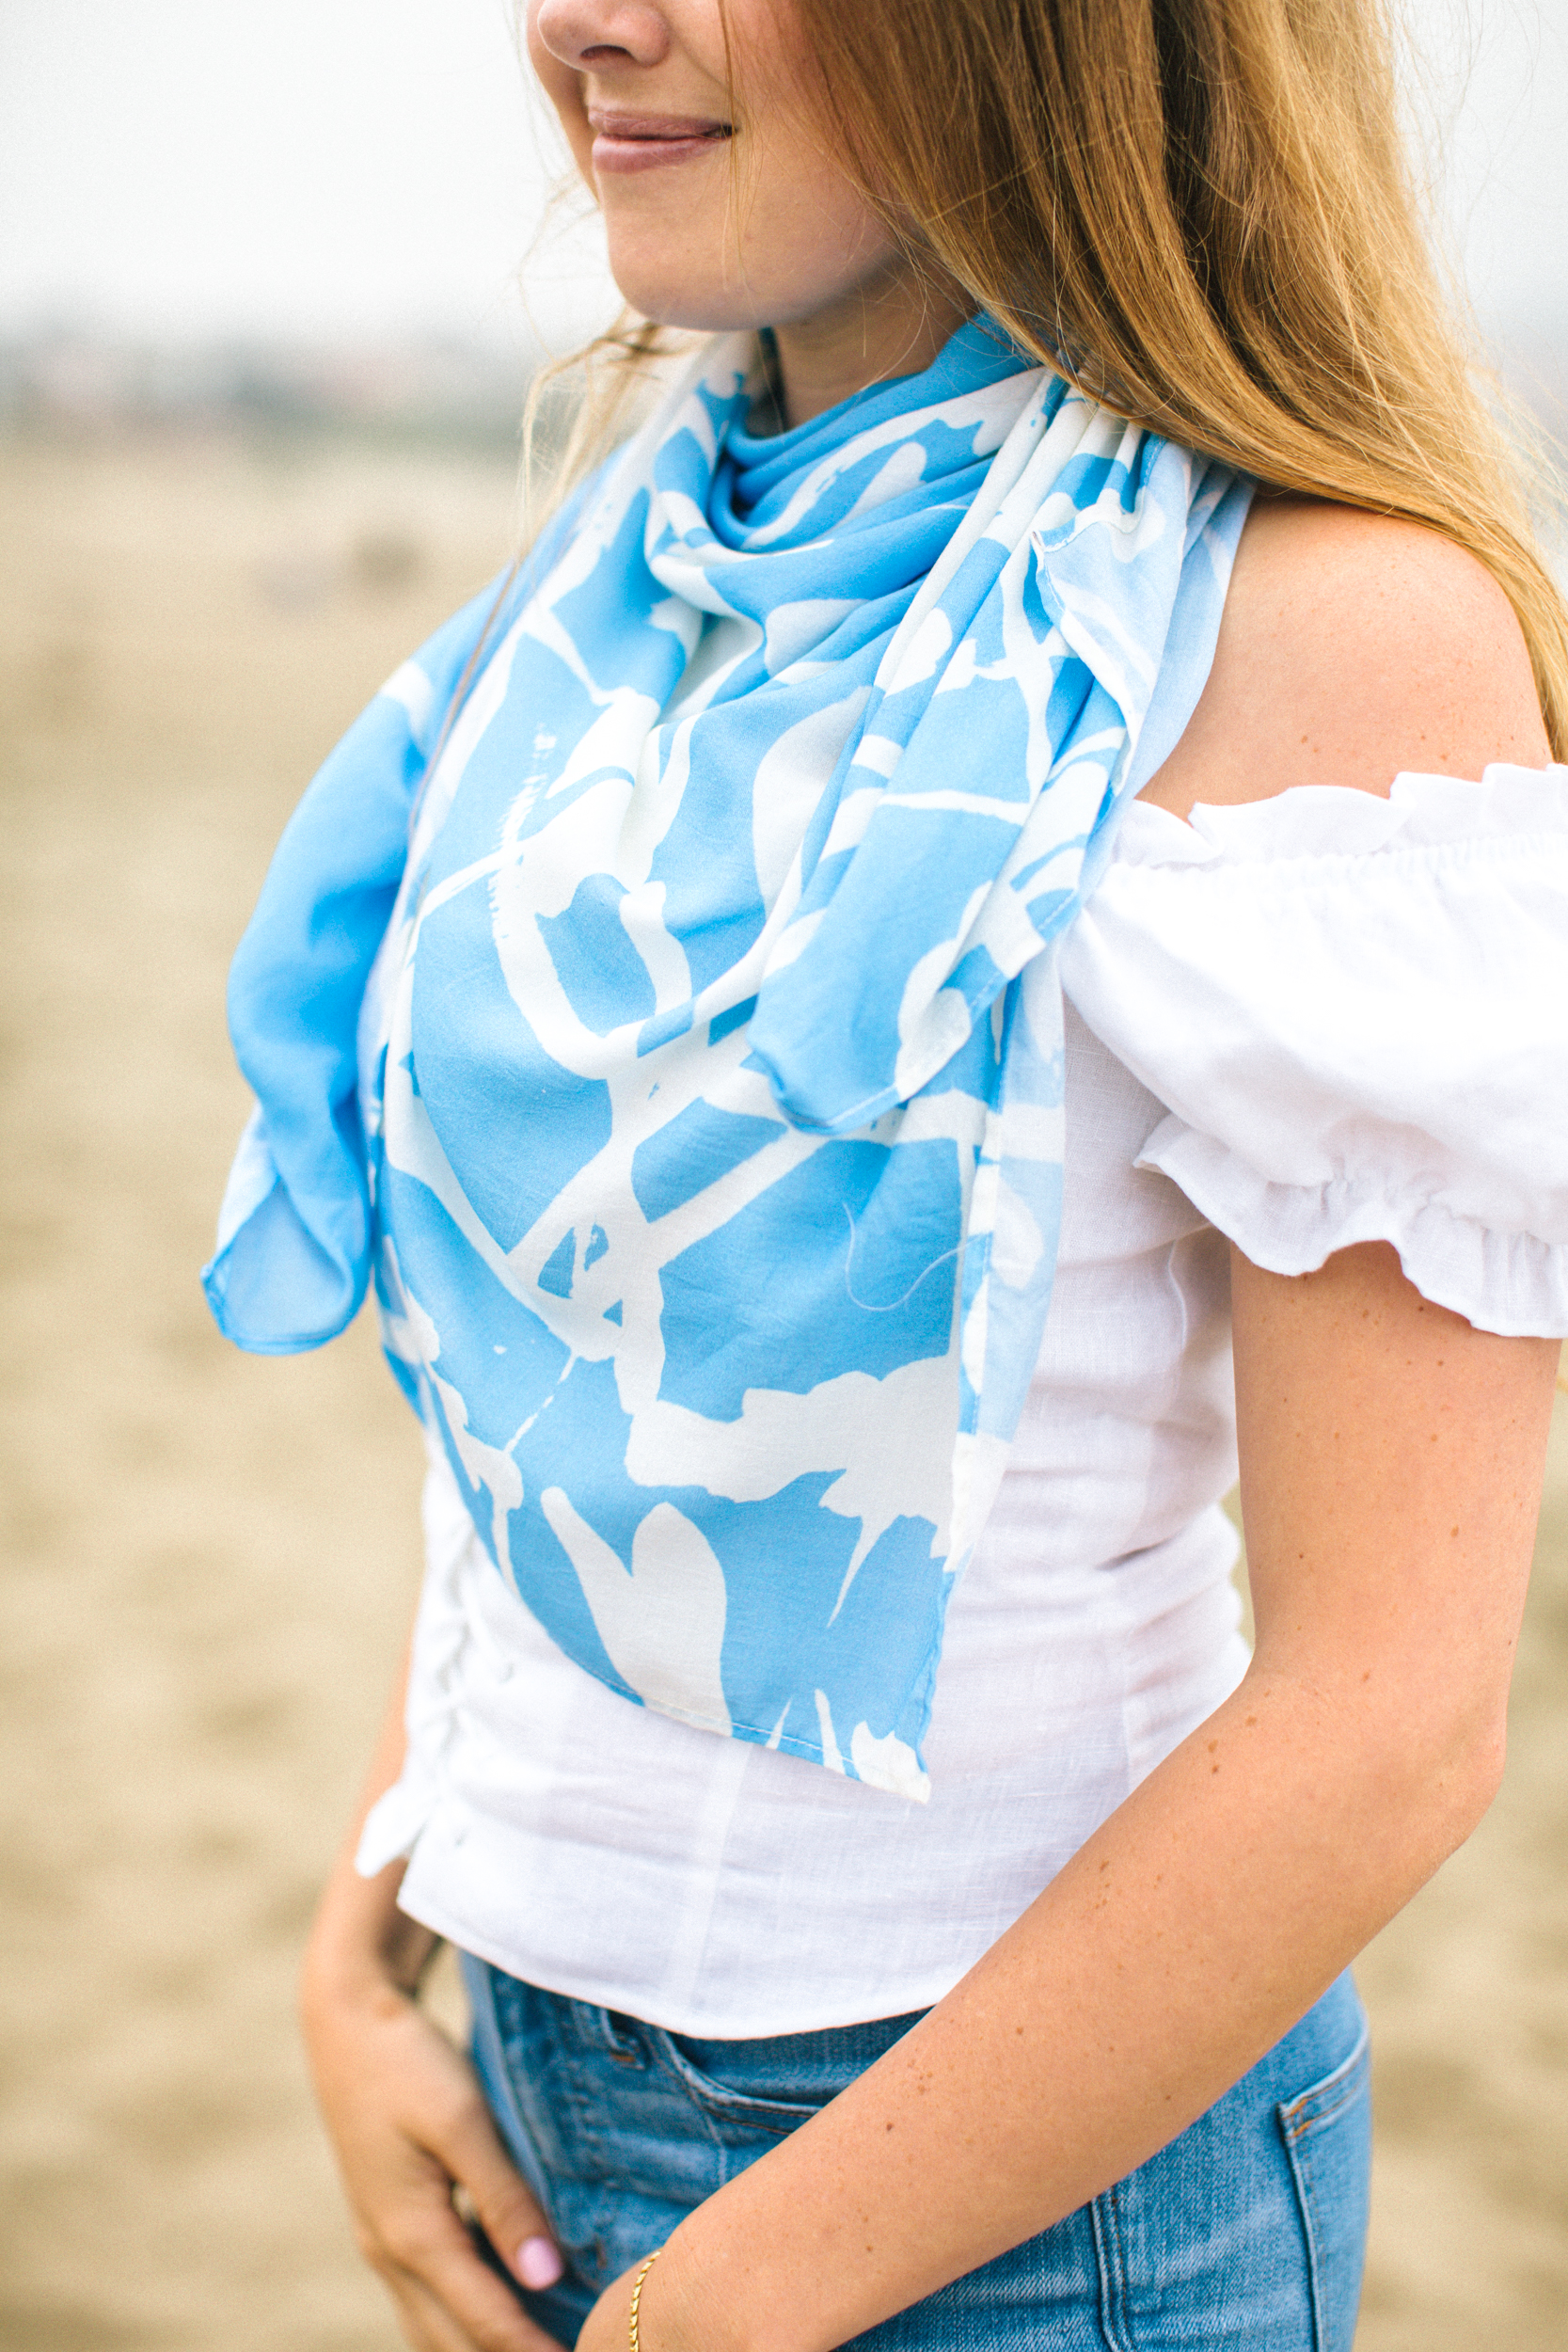 San Francisco Baker Beach Lifestyle Photoshoot. Showcasing colorful scarfs with Bridgette Thornton.